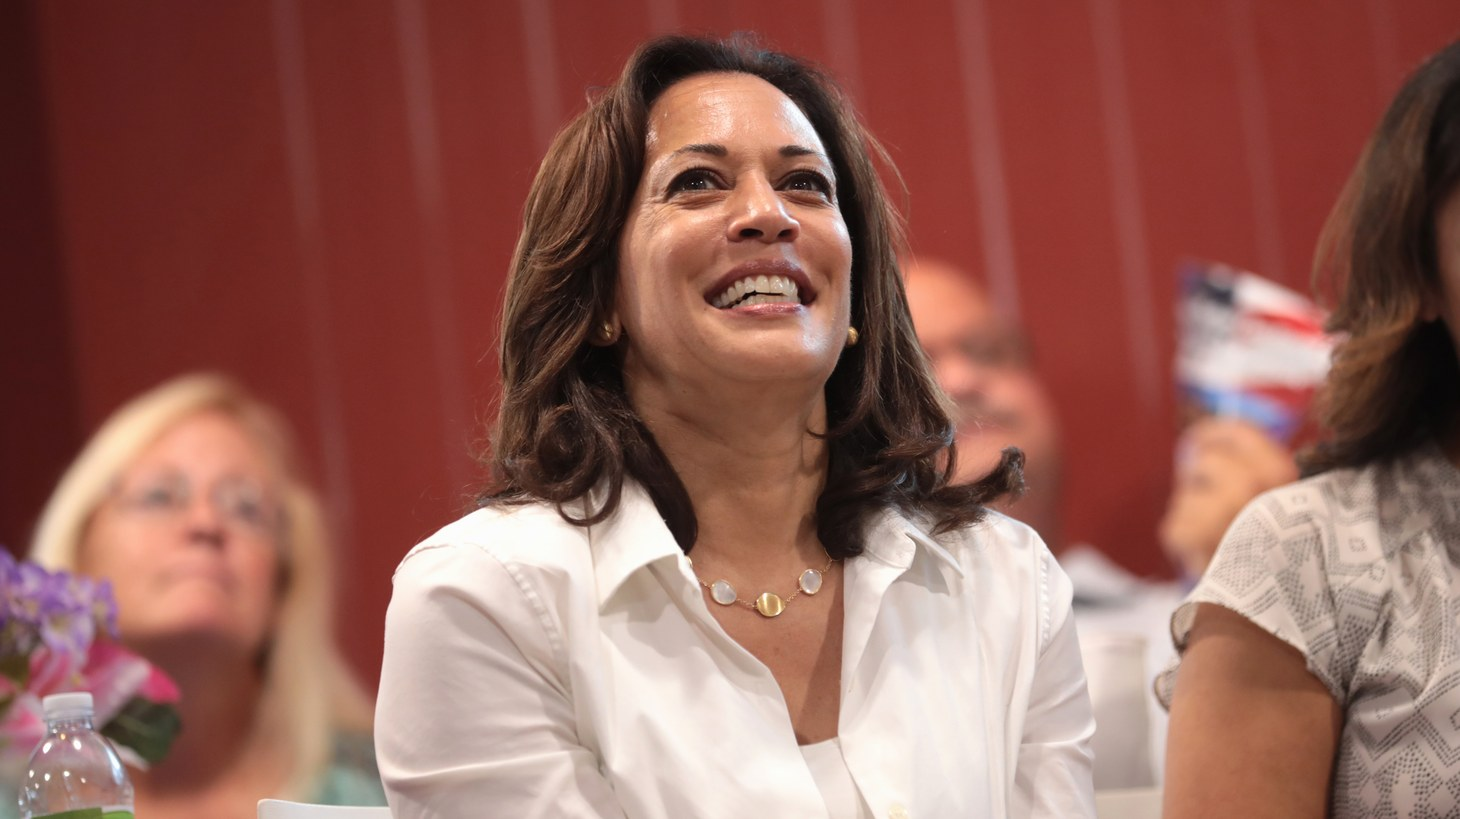 Biden Says Kamala Harris Is The Best Person For Vice President But Some Californians Are Critical Of Her Record